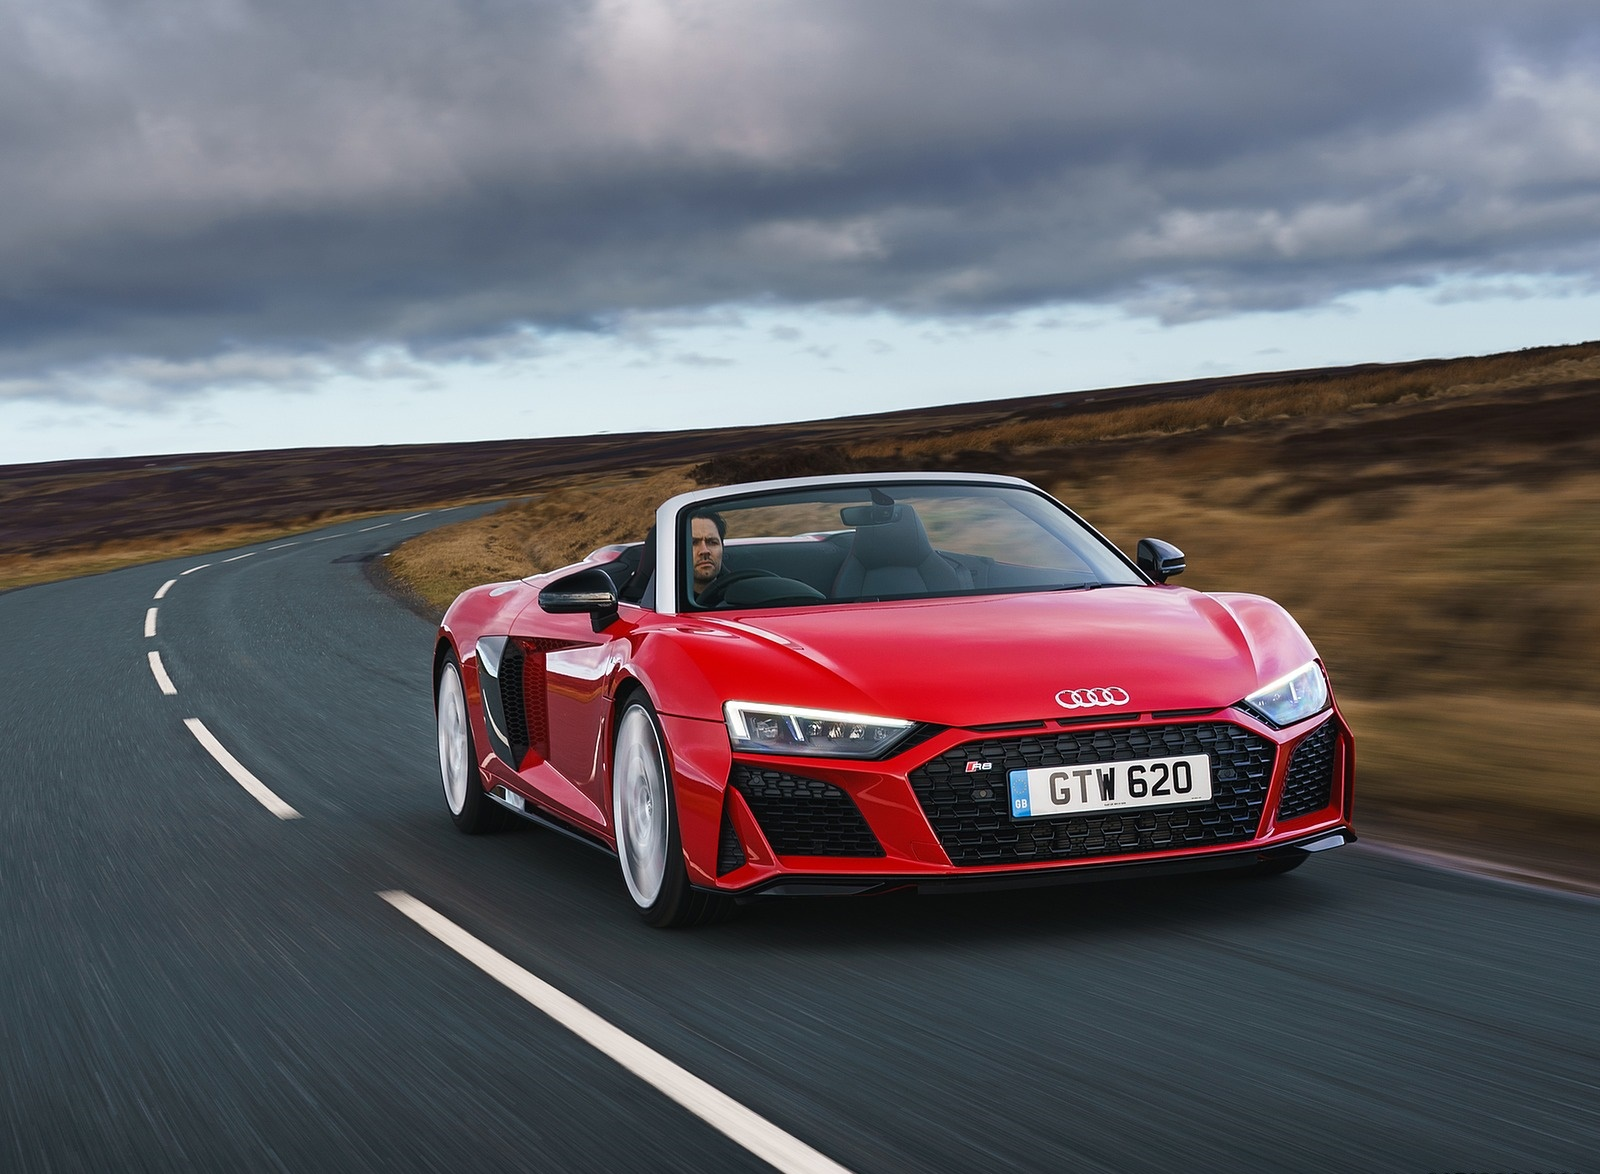 2019 Audi R8 V10 Spyder Performance quattro (UK-Spec) Front Three-Quarter Wallpapers (6)